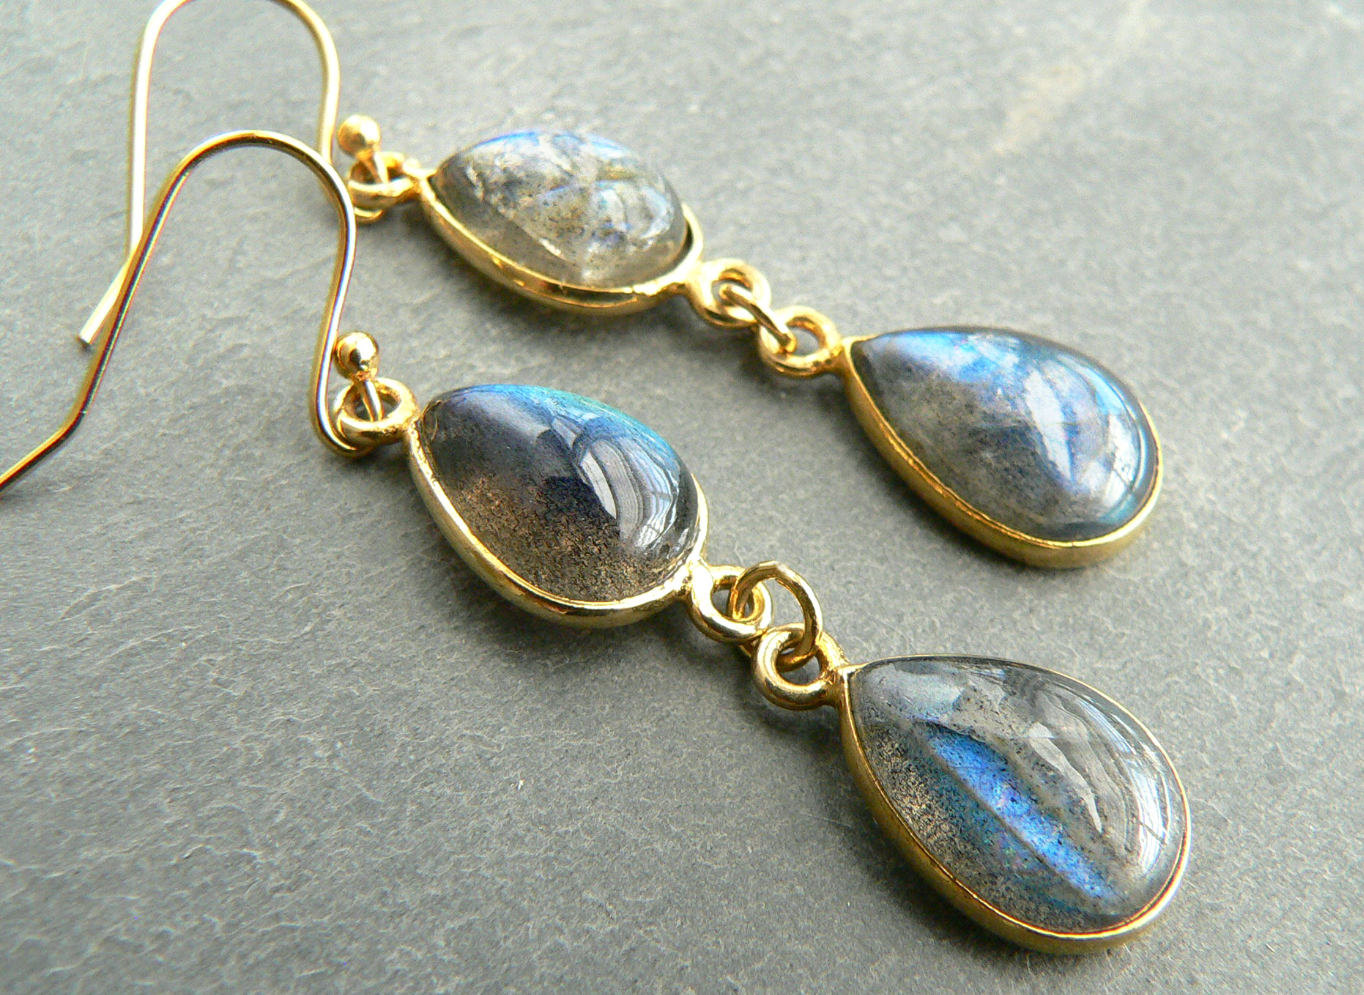 BLUE LABRADORITE EARRINGS